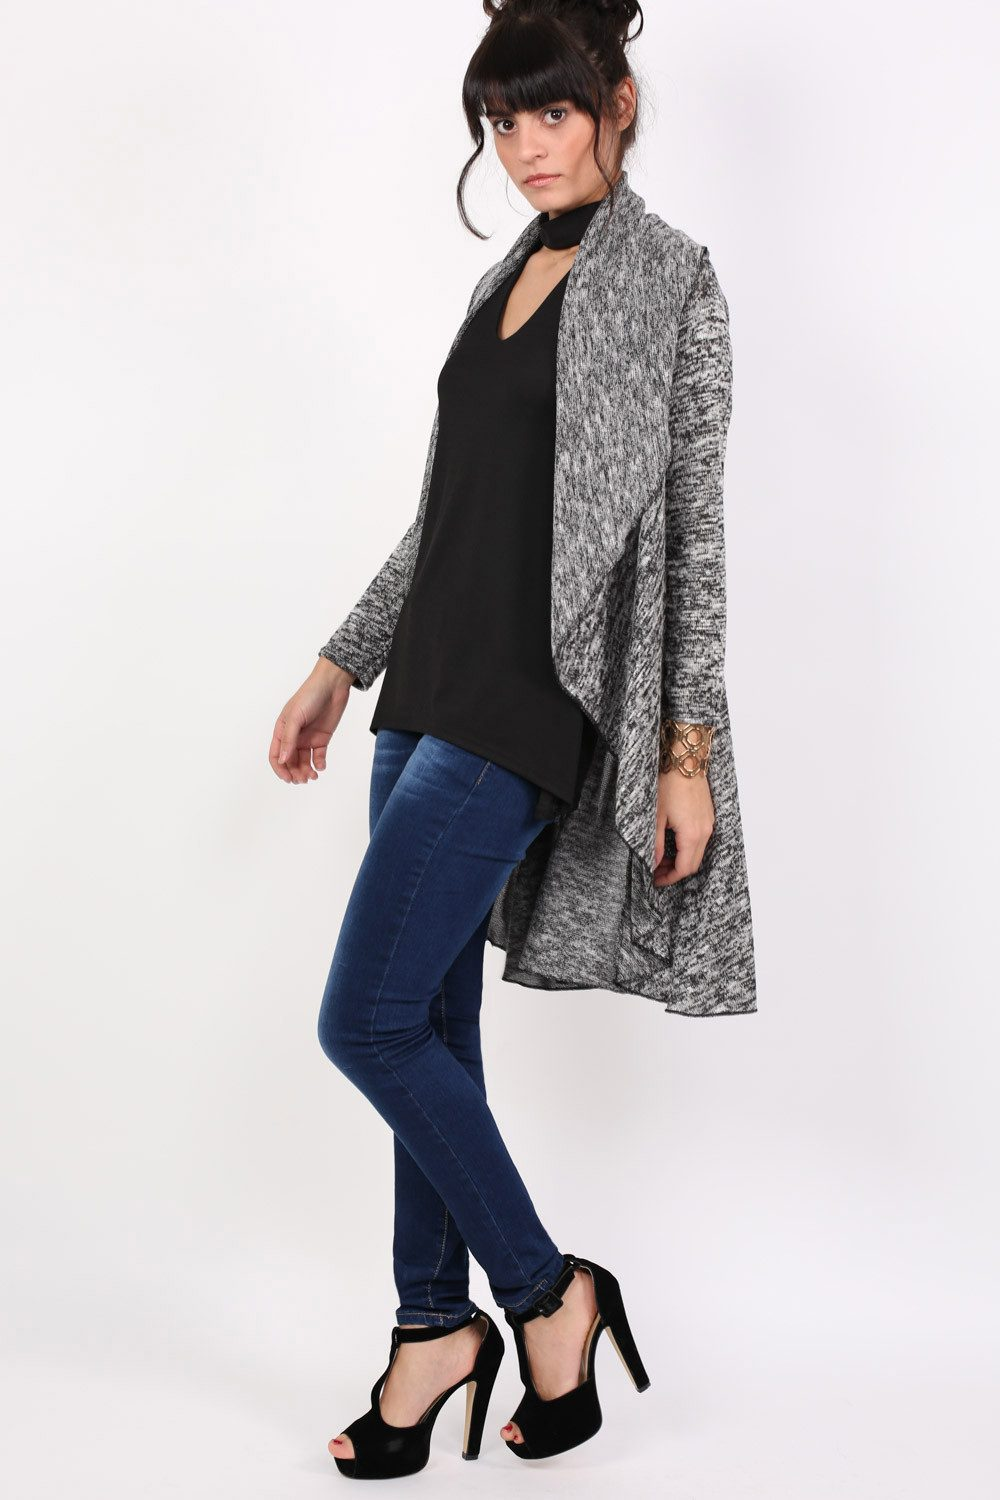 Long Sleeve Slub Knit Waterfall Cardigan in Grey MODEL SIDE